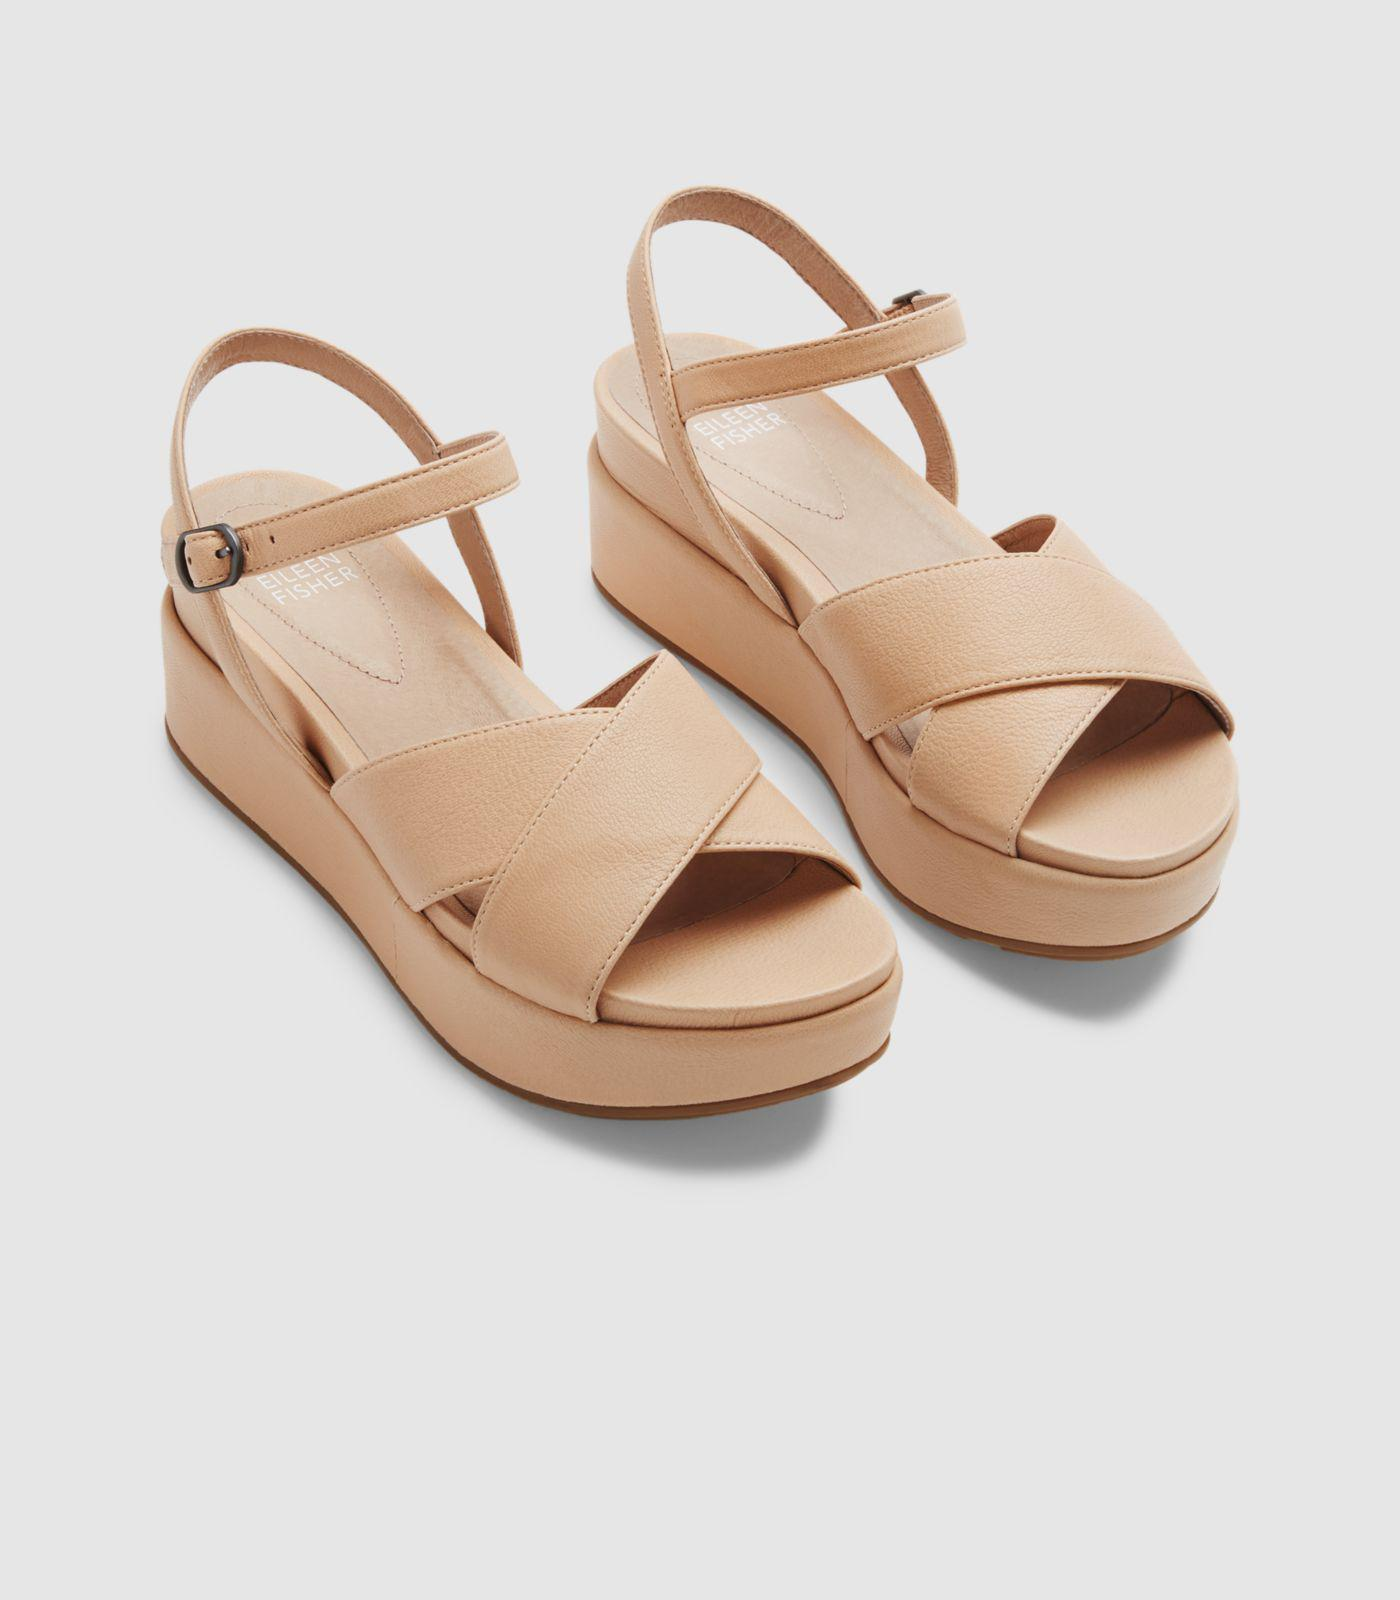 026d342cf86a Lyst - Eileen Fisher Juno Platform Sandal in Natural